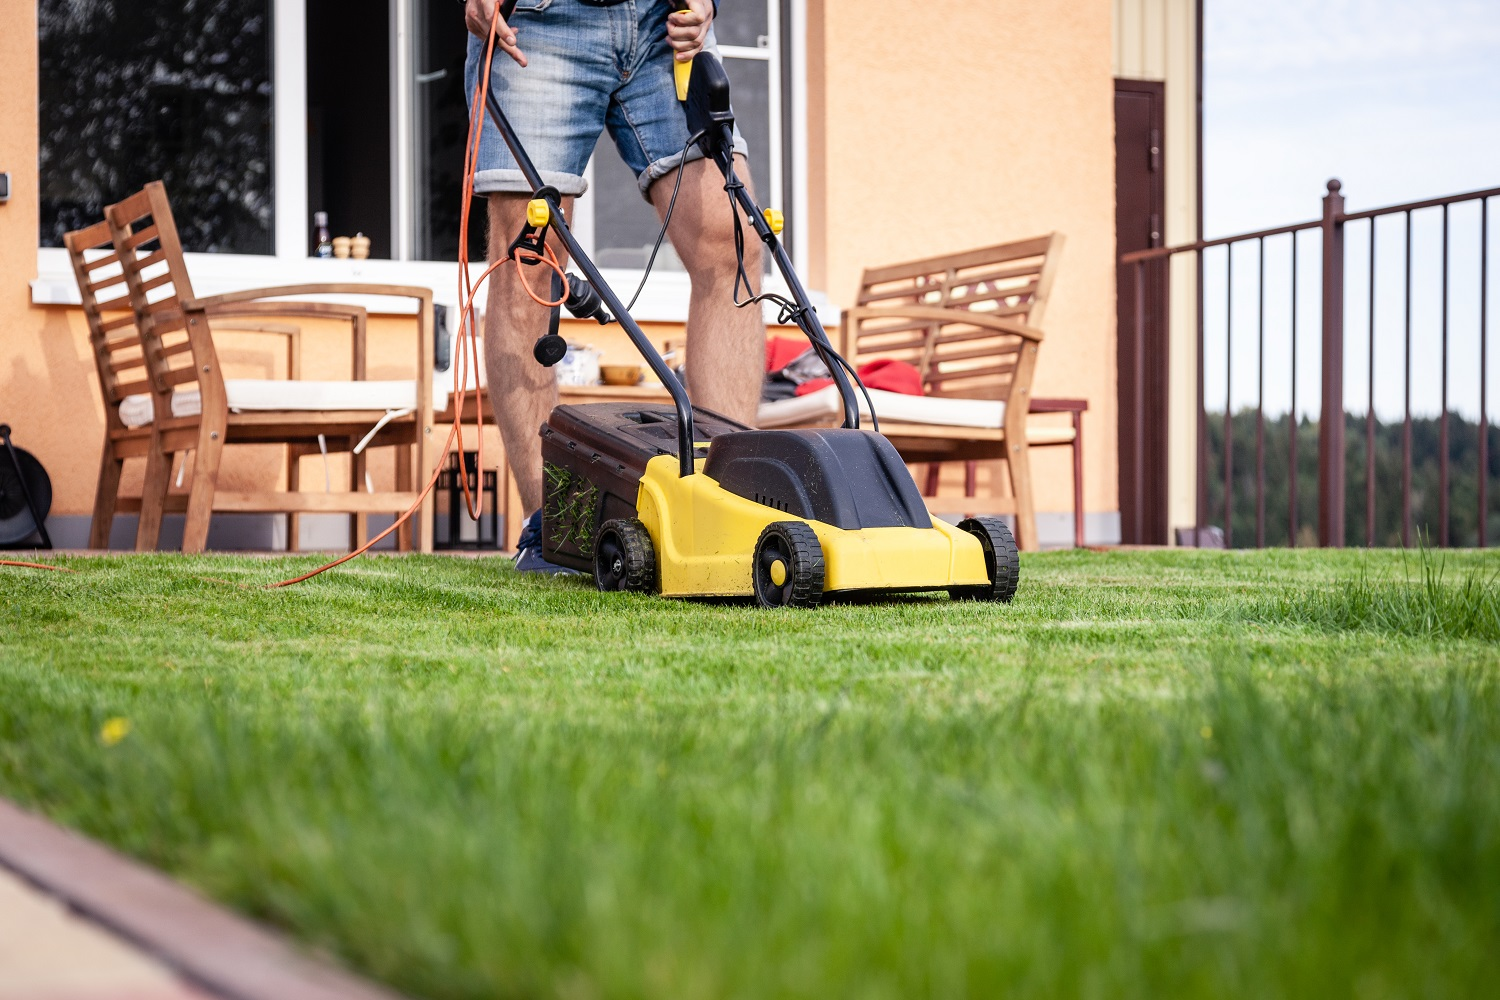 Lawn mower, green grass, equipment, mowing, gardener, care, work, tool, home, housekeeper on work